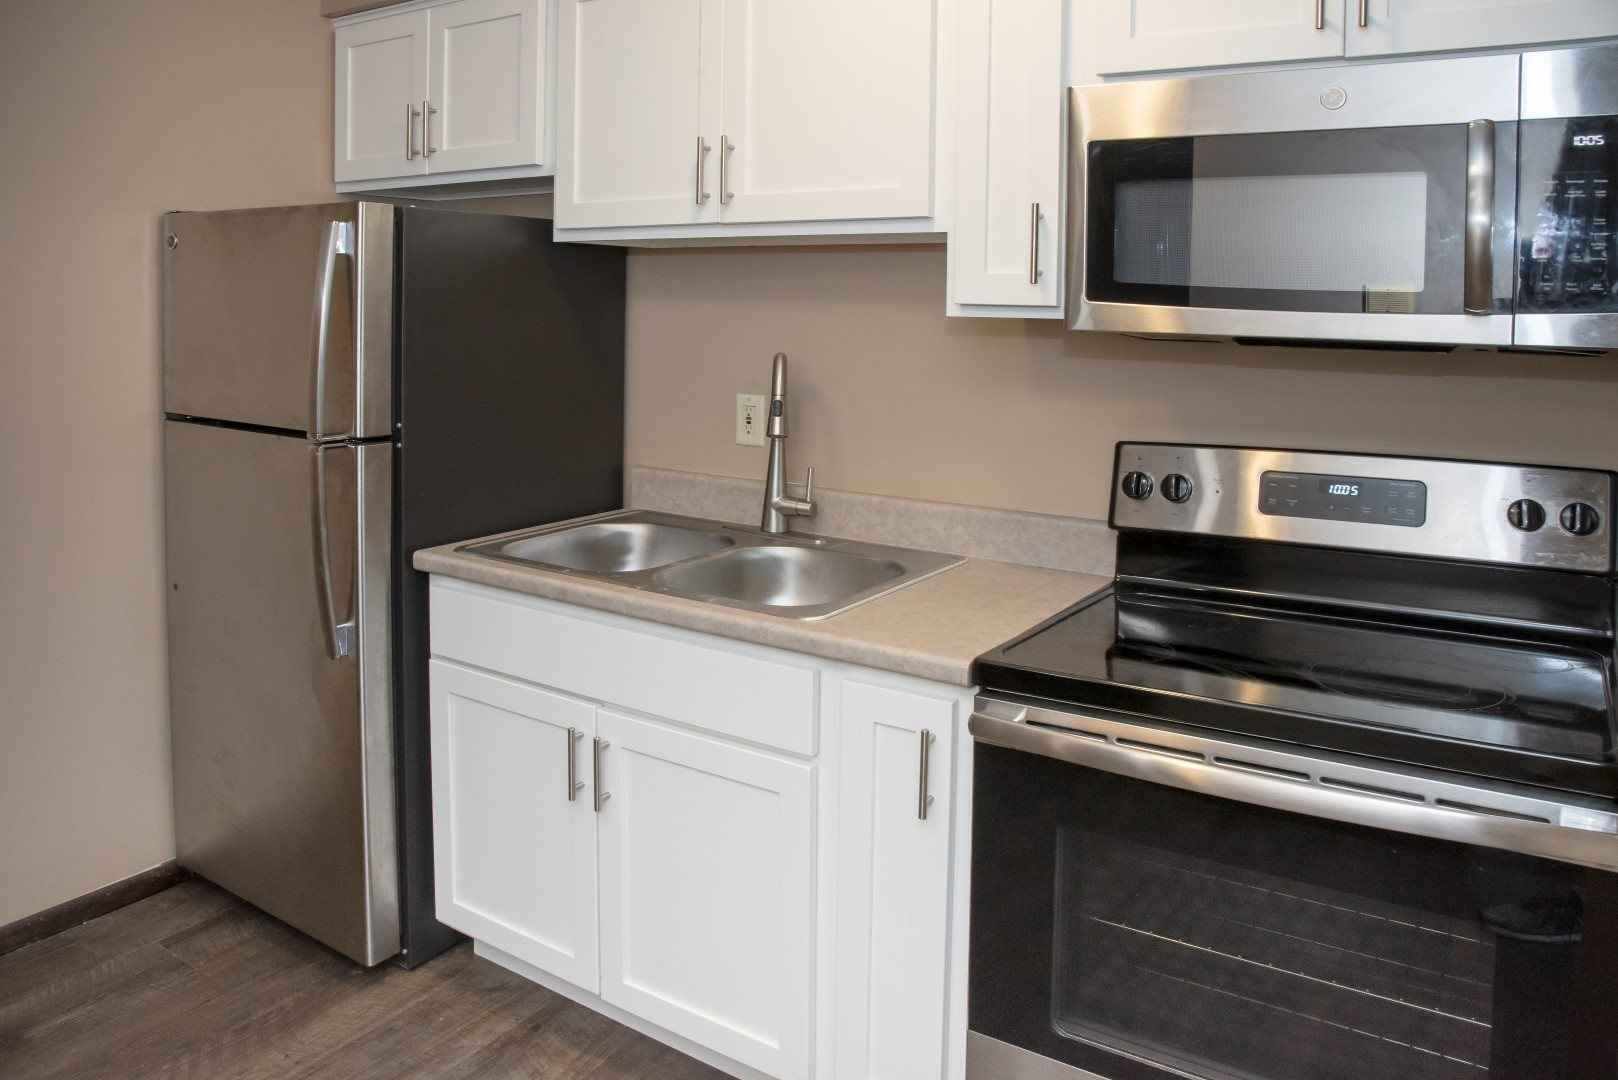 Studio apartment, kitchen with stainless steel appliances